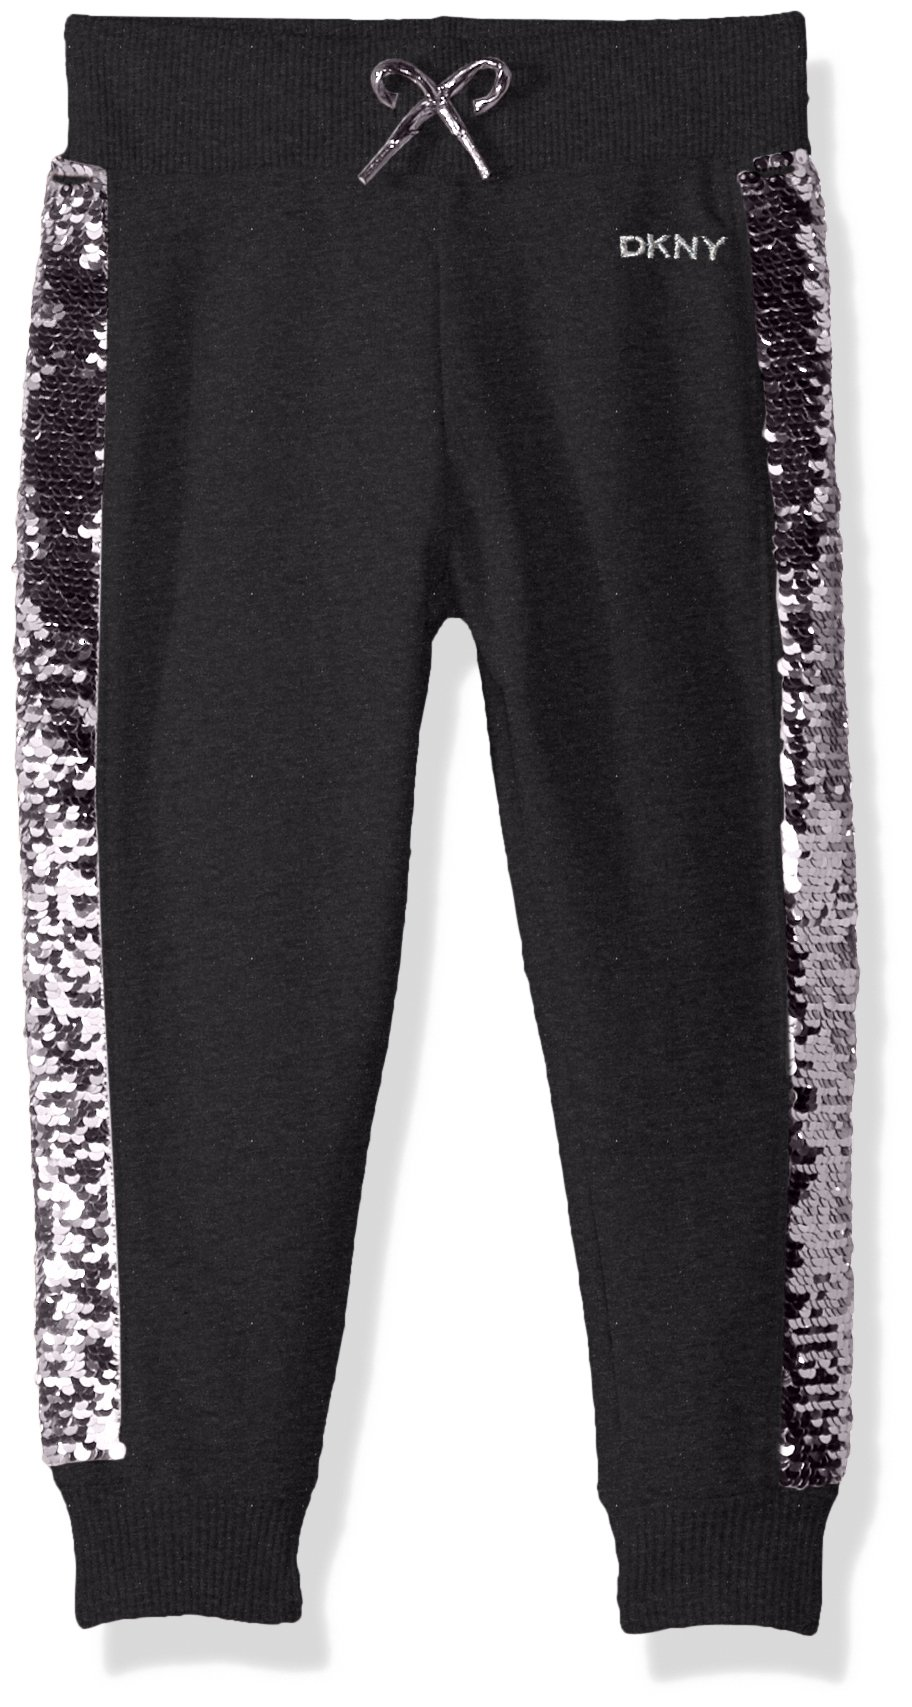 DKNY Toddler Girls' Casual Pant, Flip Sequin Charcoal Heather, 4T